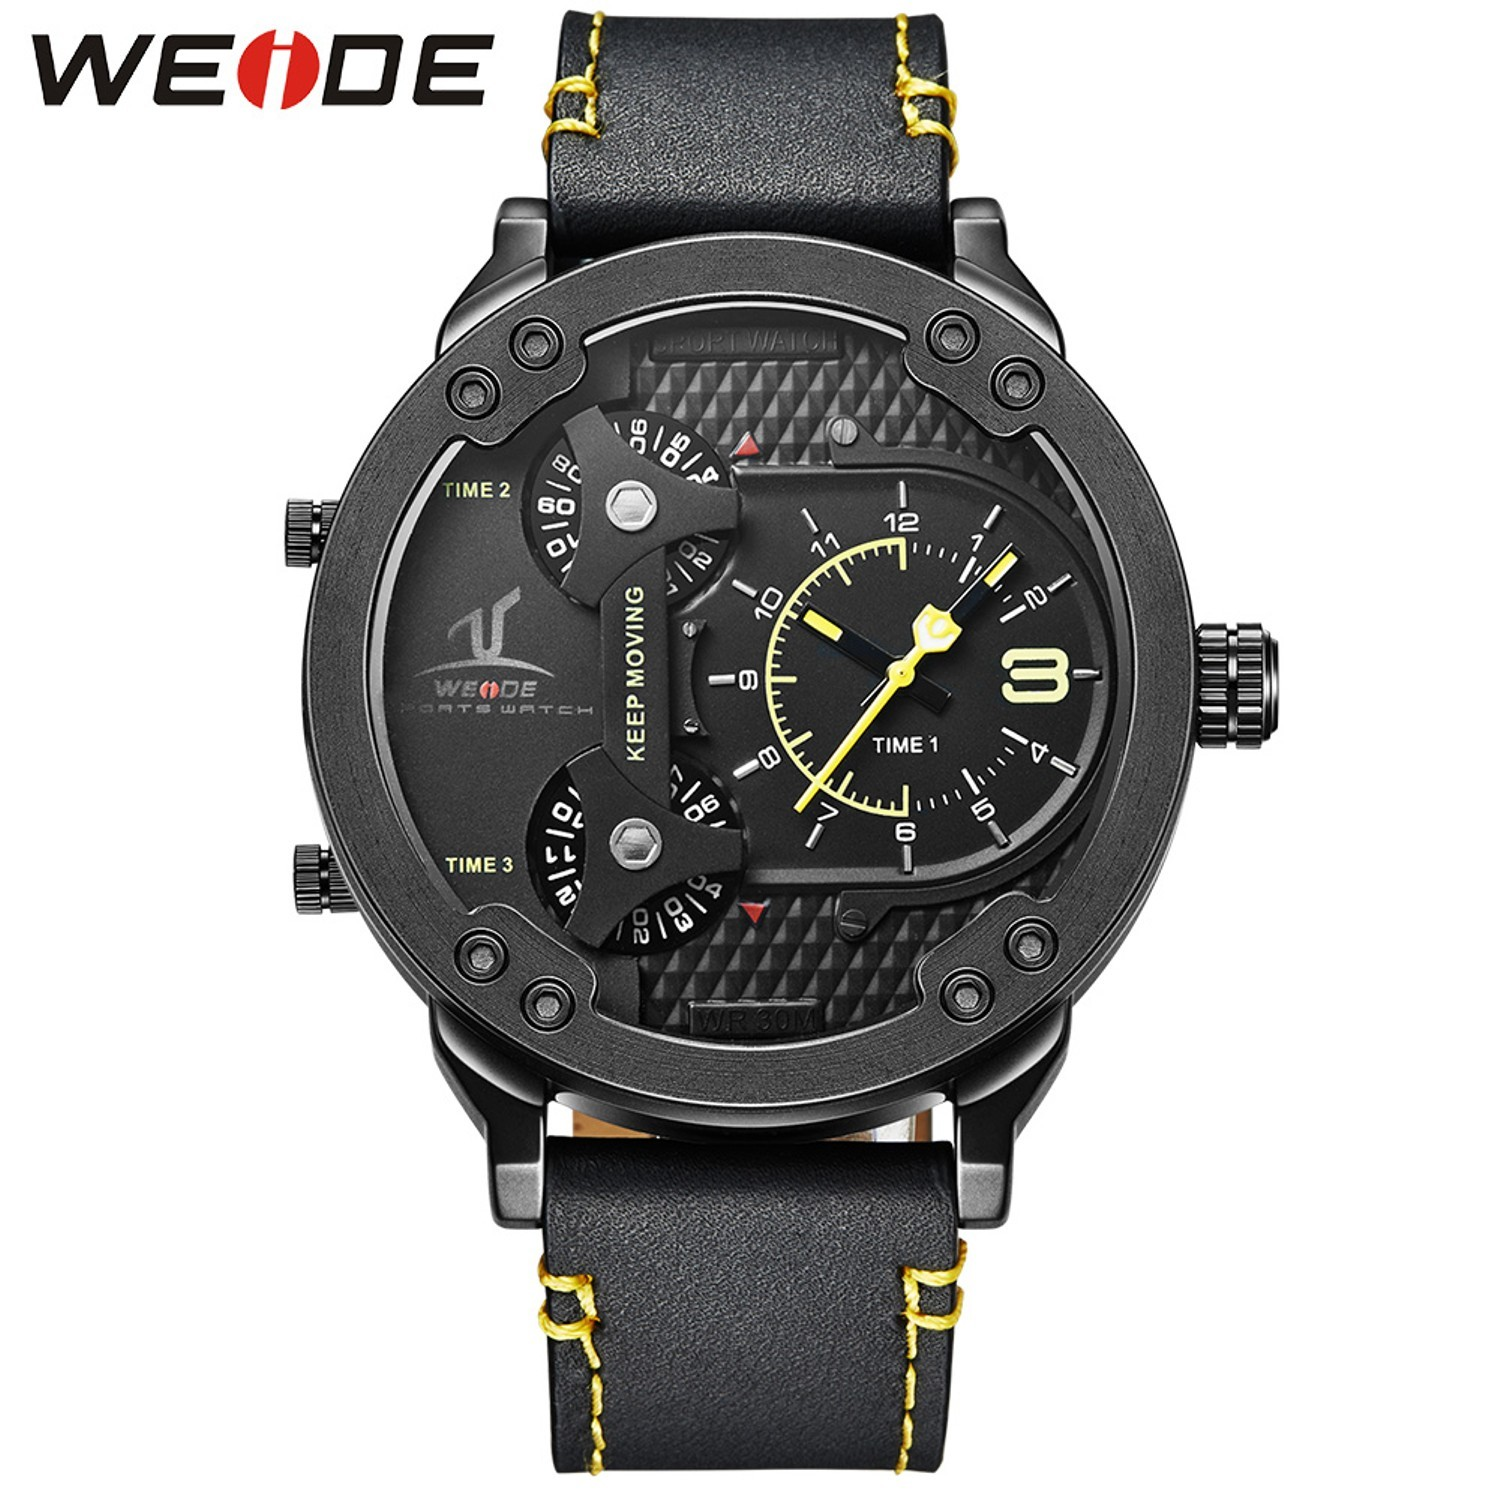 WEIDE-Multiple-Auto-Date-Time-Zone-Leather-Strap-Stainless-Steel-Buckle-Black-Yellow-Dial-Analog-Quartz_1500x1500_STRETCH_636.jpg